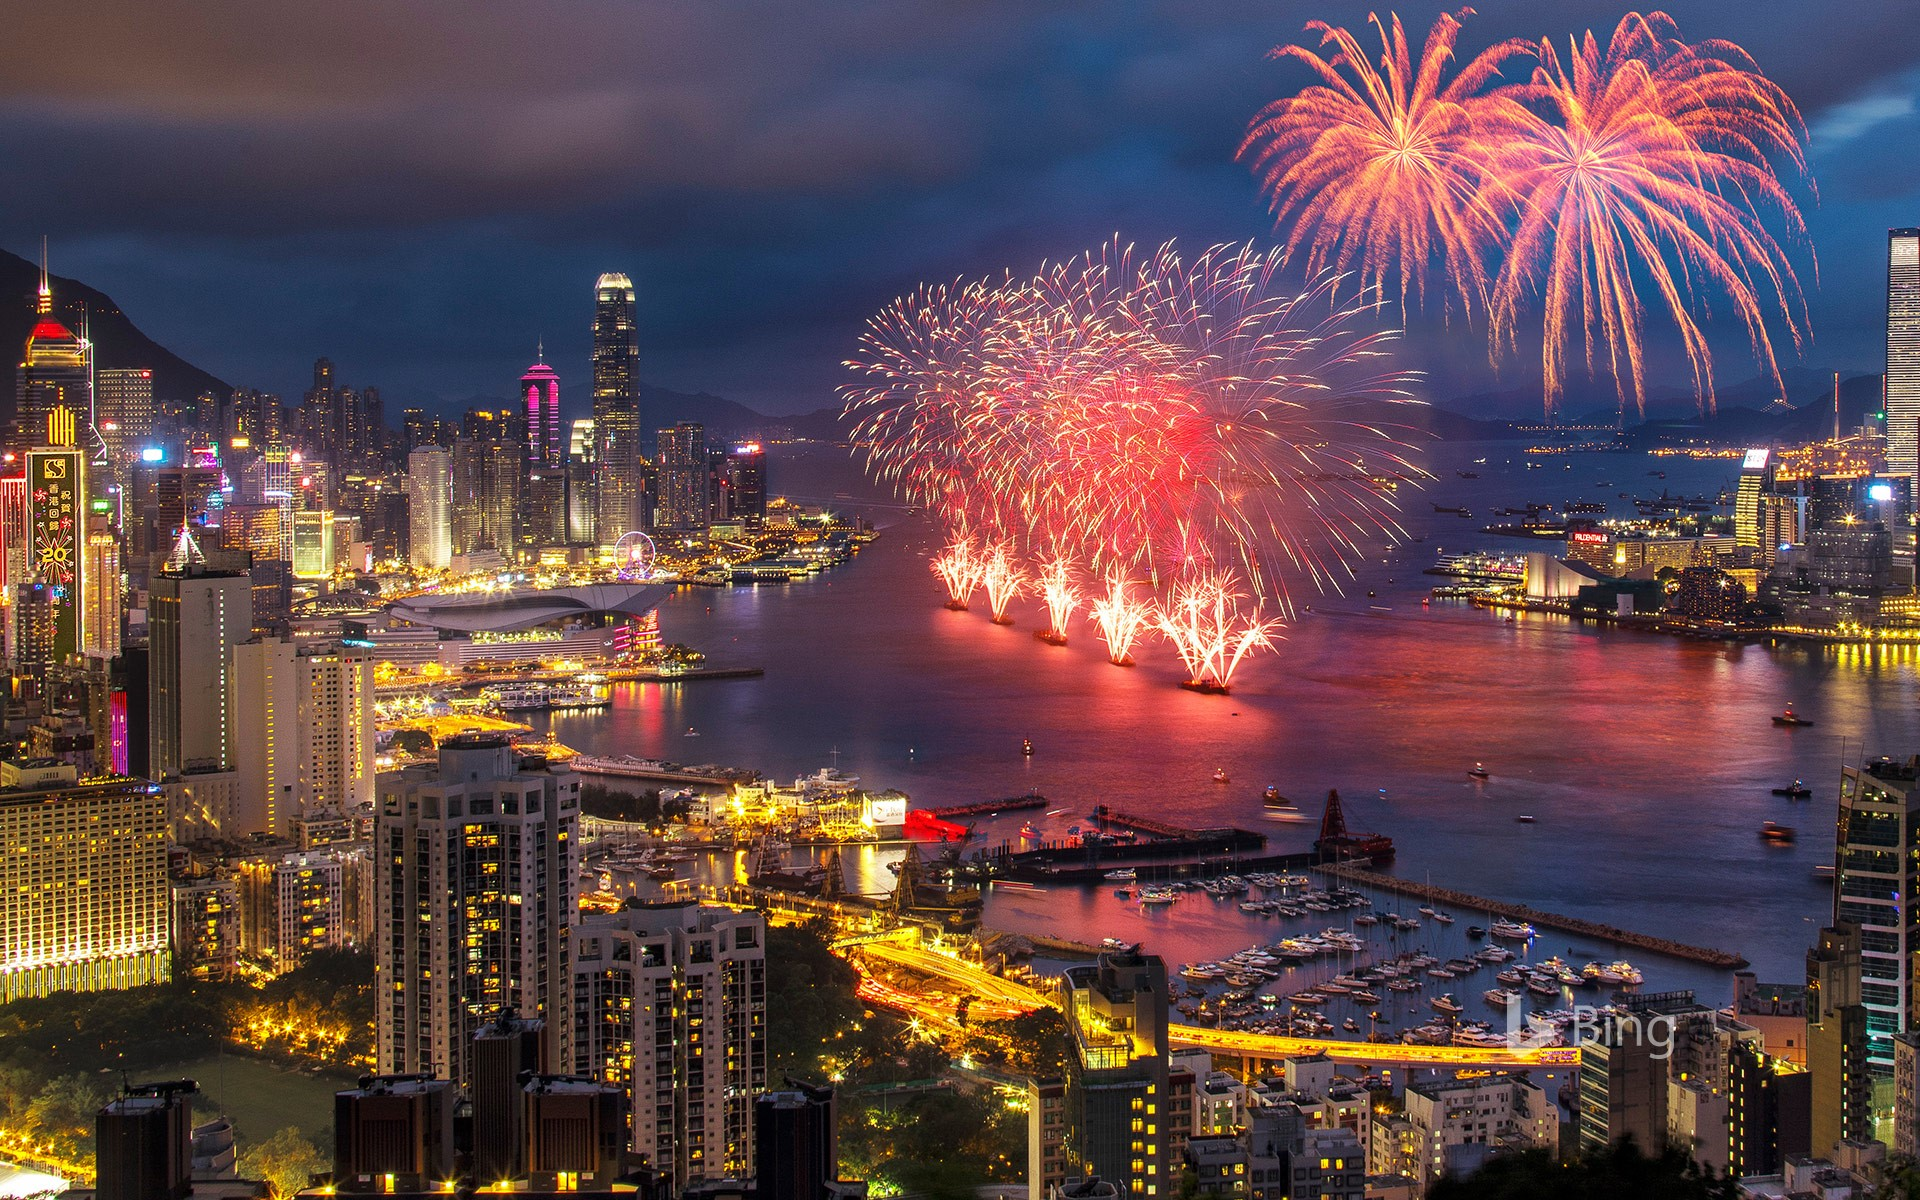 [22th Anniversary of Hong Kong's Return]